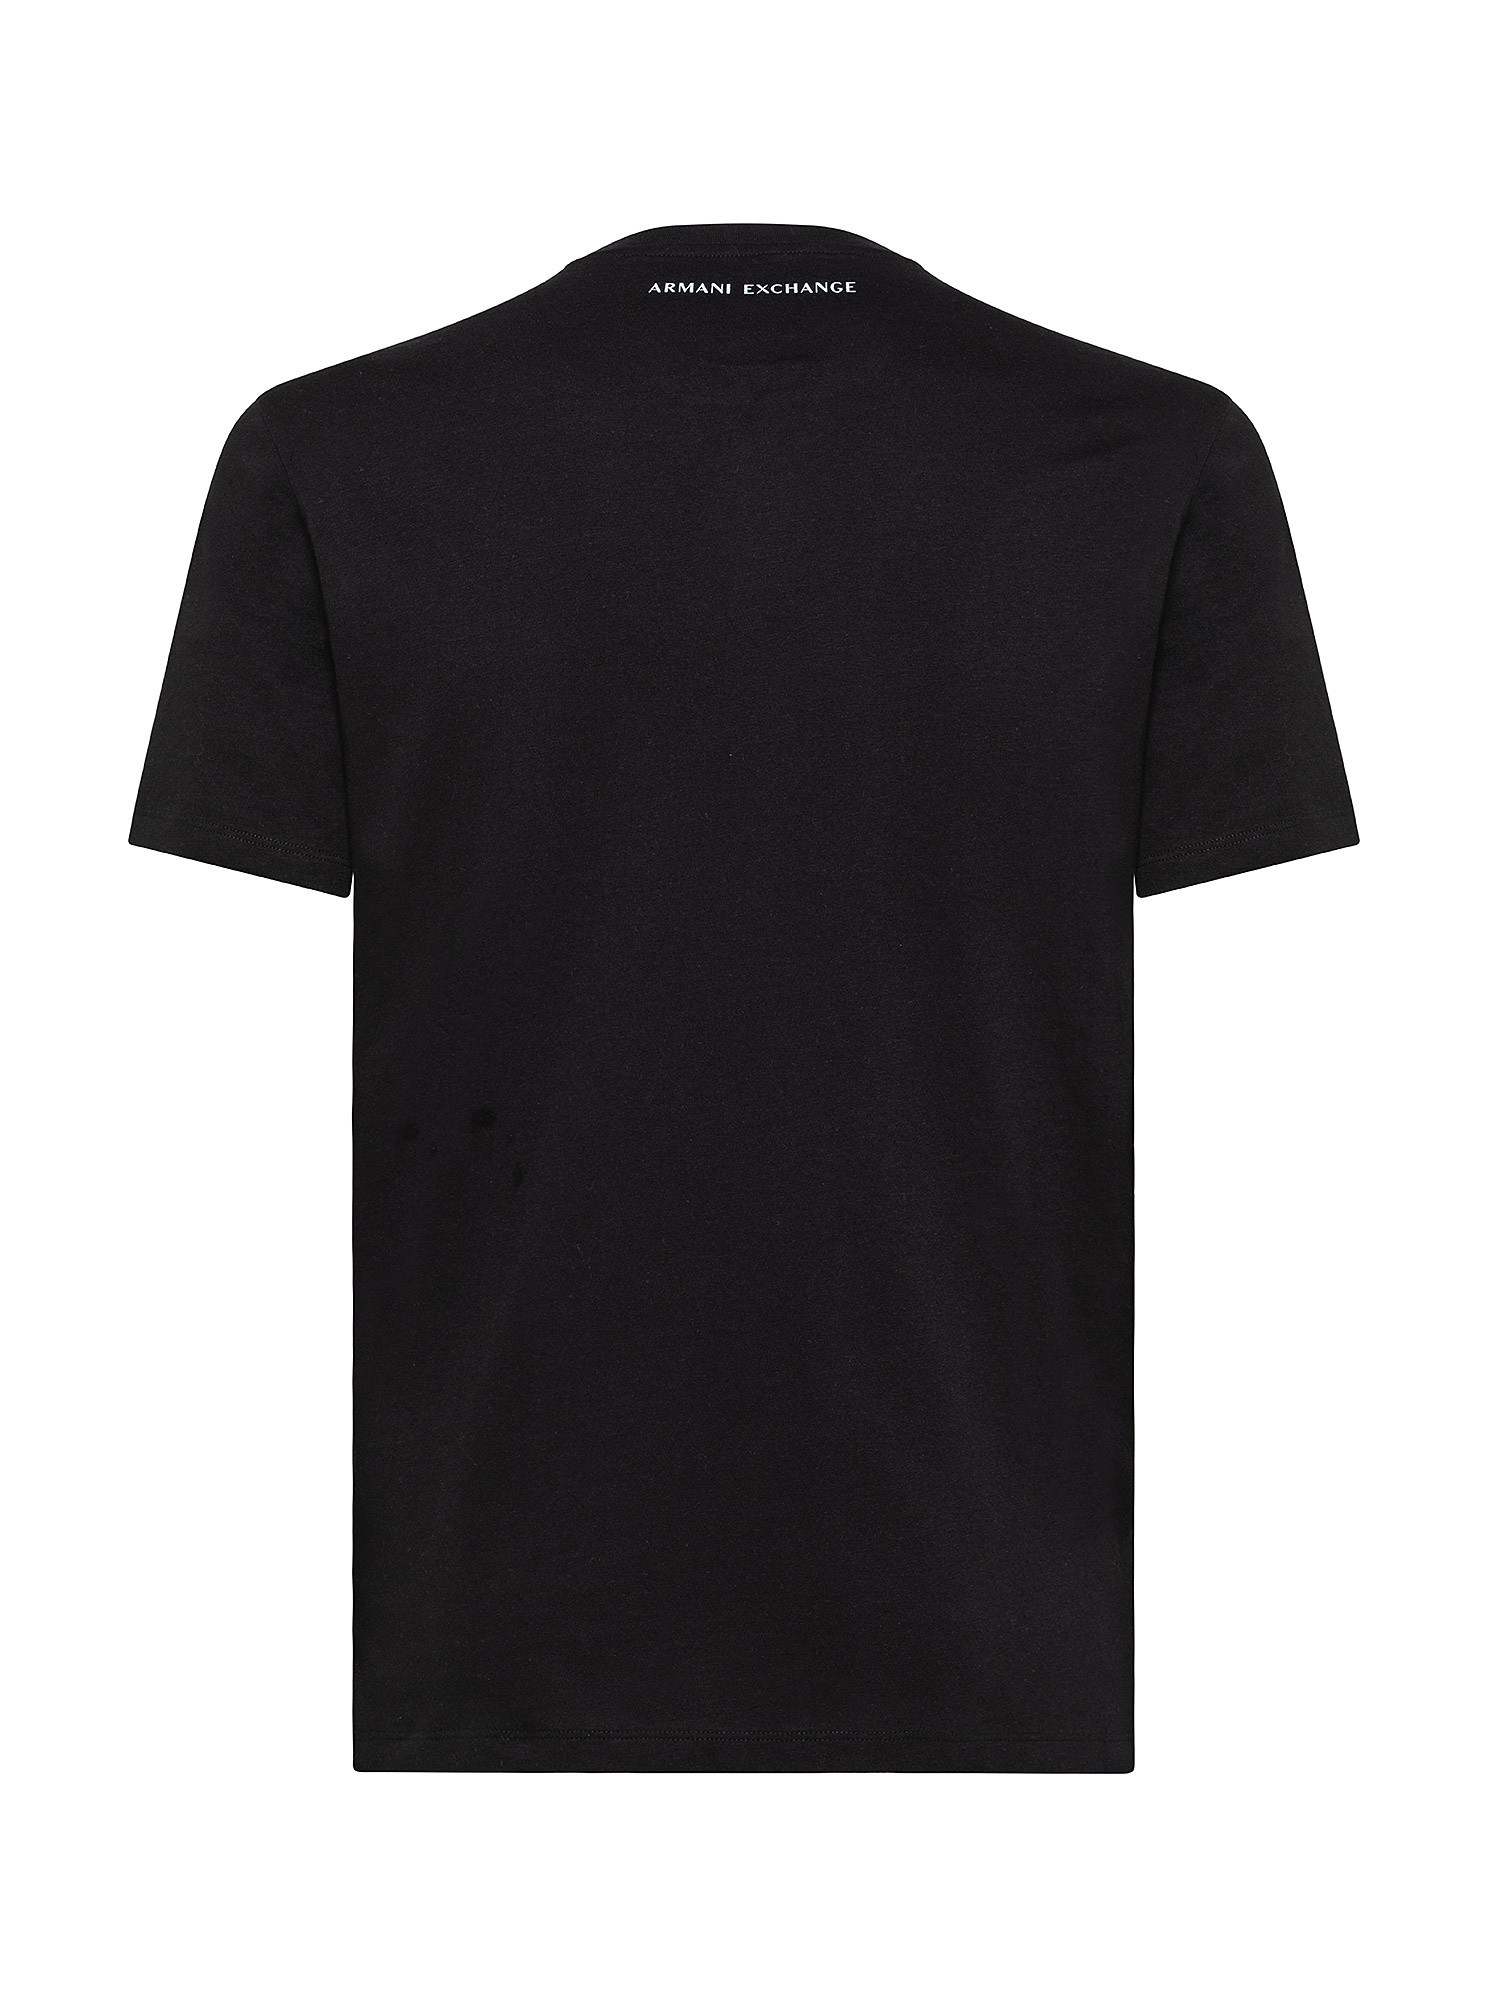 T-Shirt in cotone riciclato, Nero, large image number 1